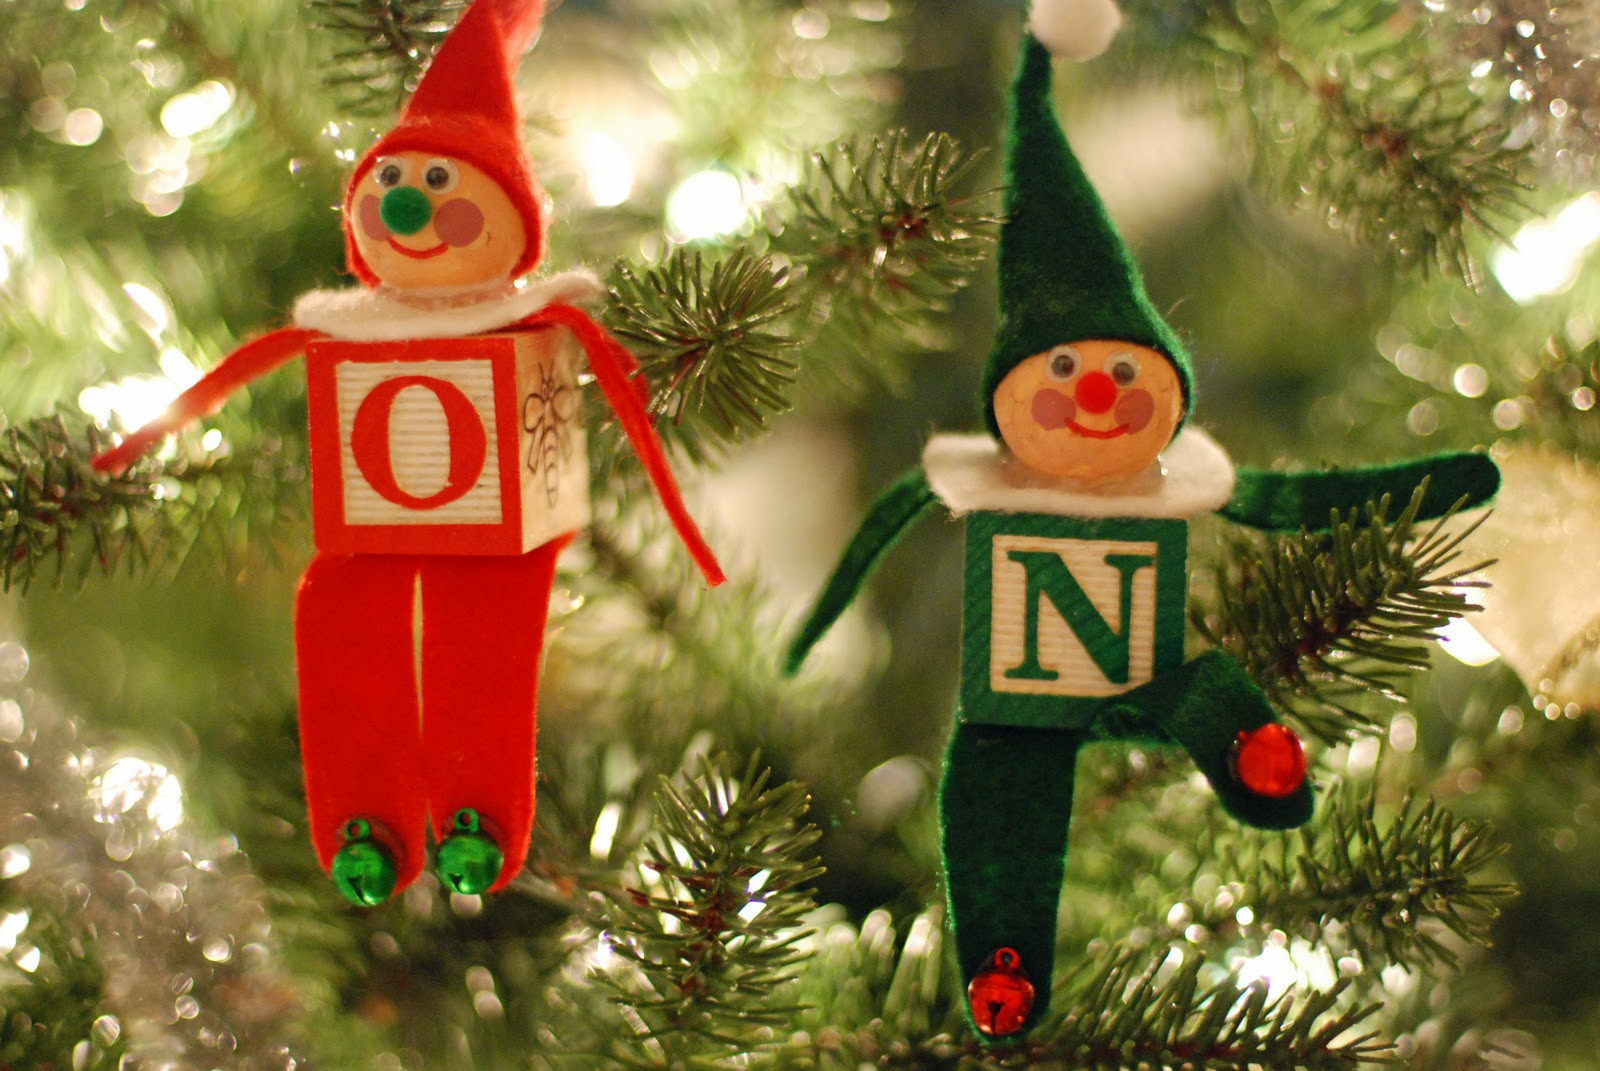 Christmas ornaments to Make Unique that Artist Woman How to Make An Alphabet Block Elf Of Delightful 43 Images Christmas ornaments to Make